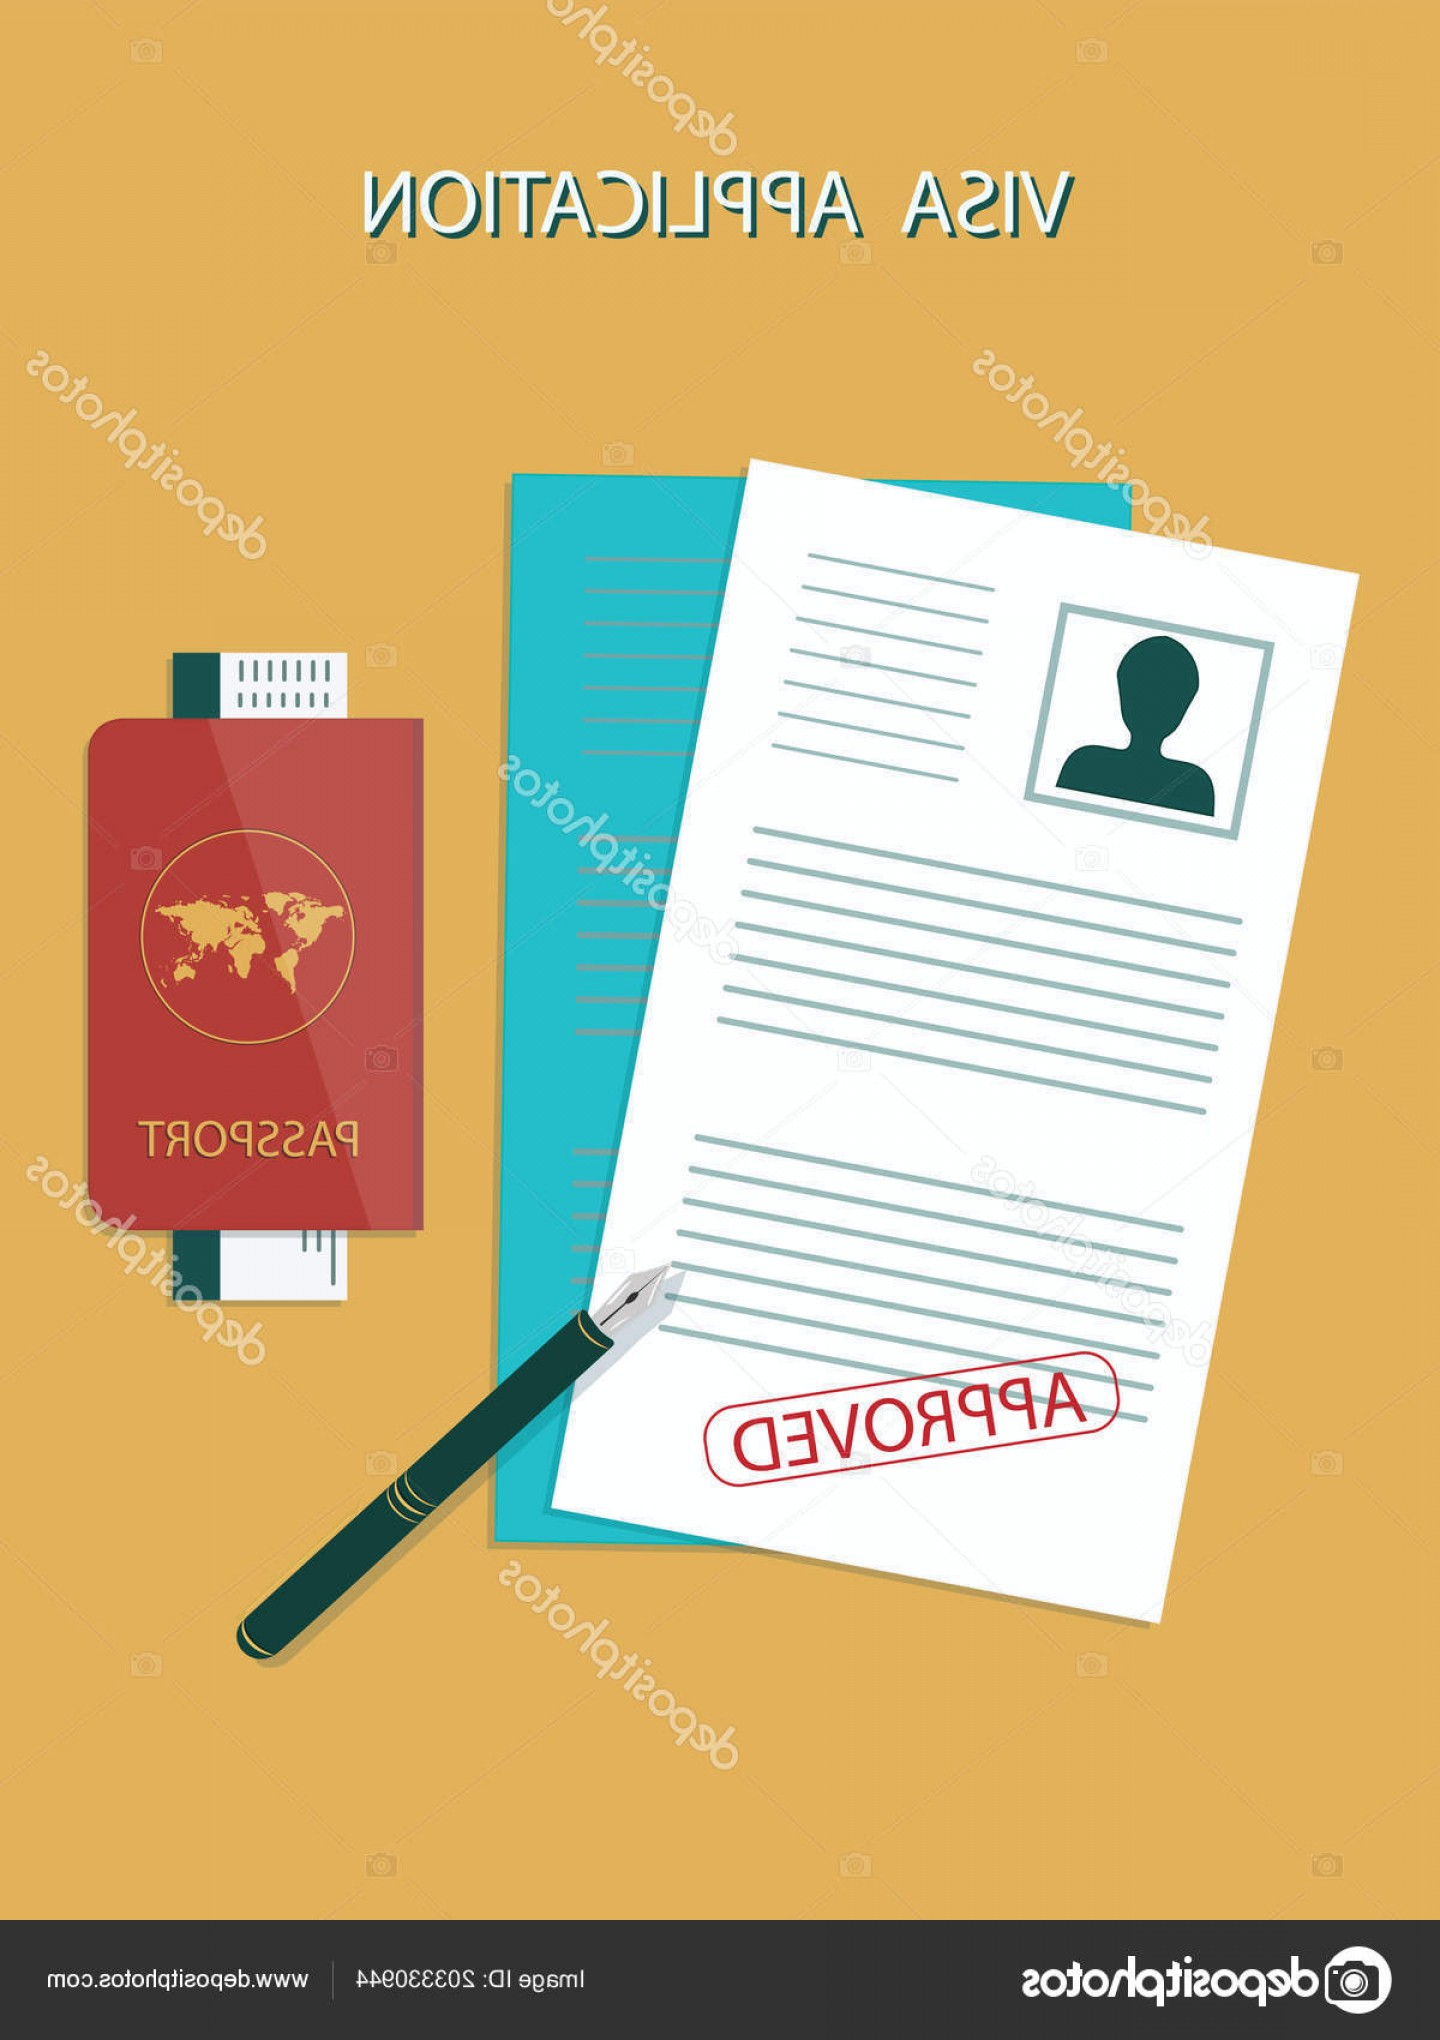 Vector Application Form: Stock Illustration Visa Application Form Photo Stamp